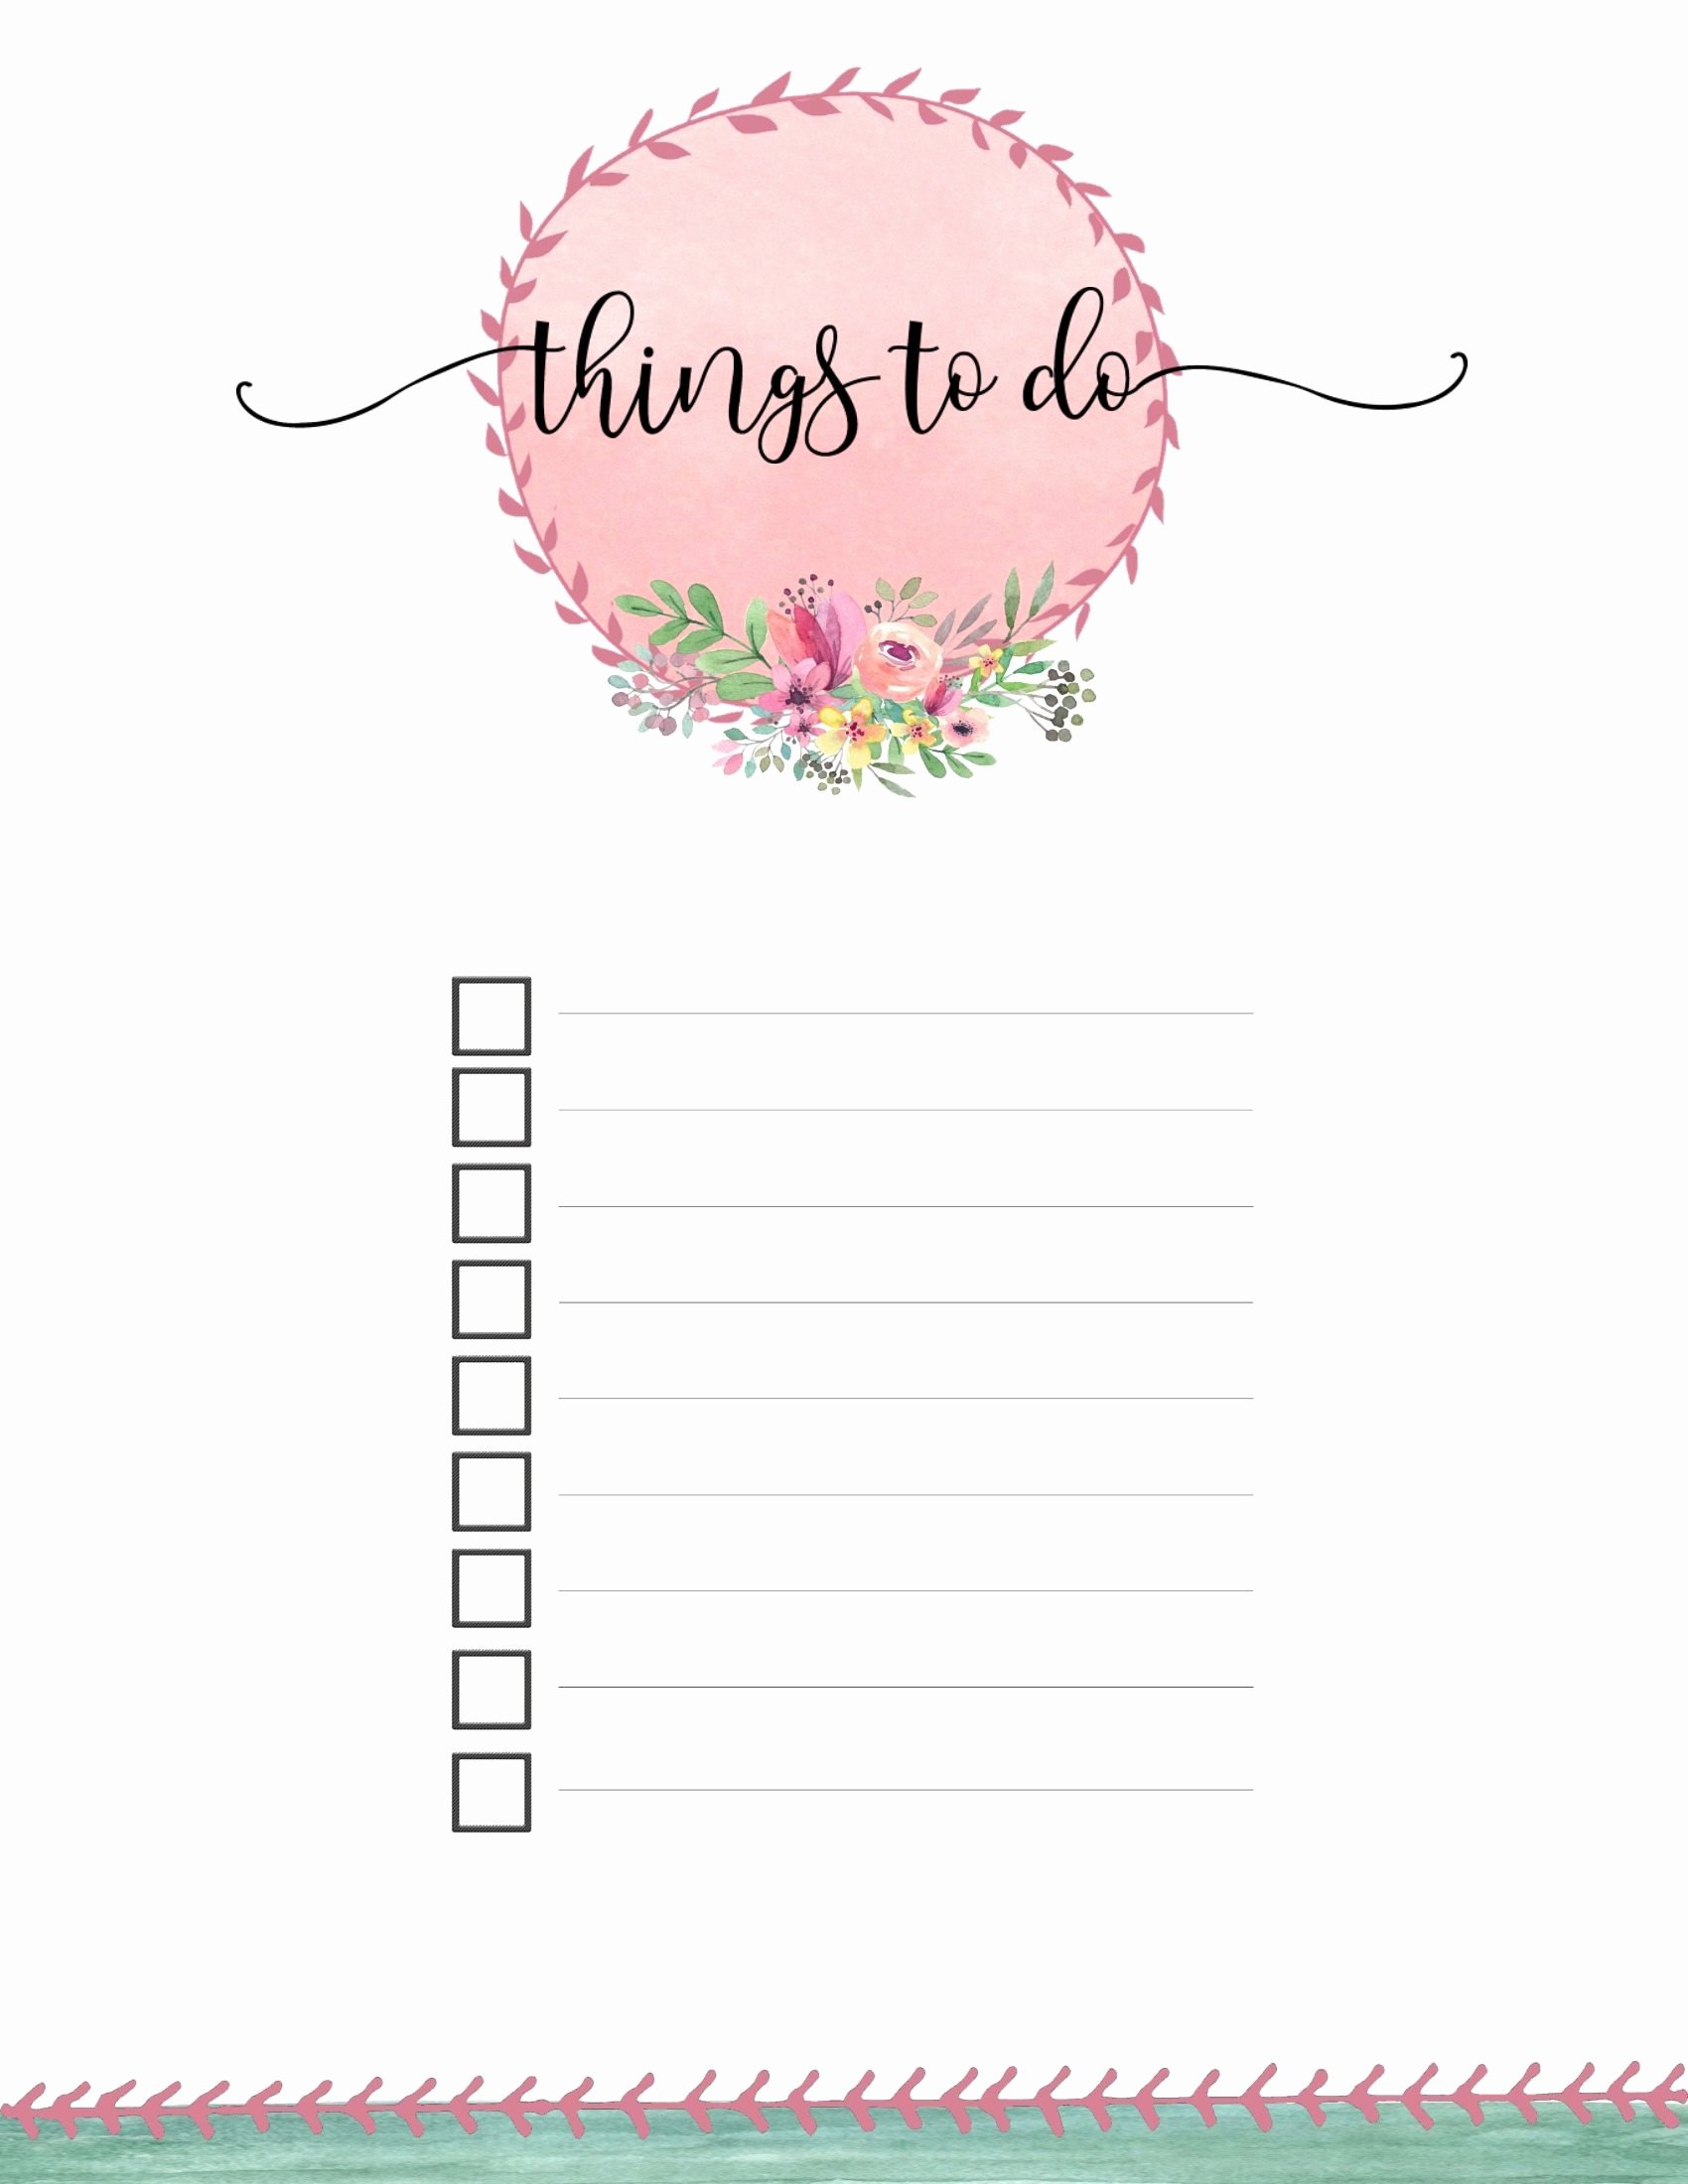 Free Printable to Do List Templates